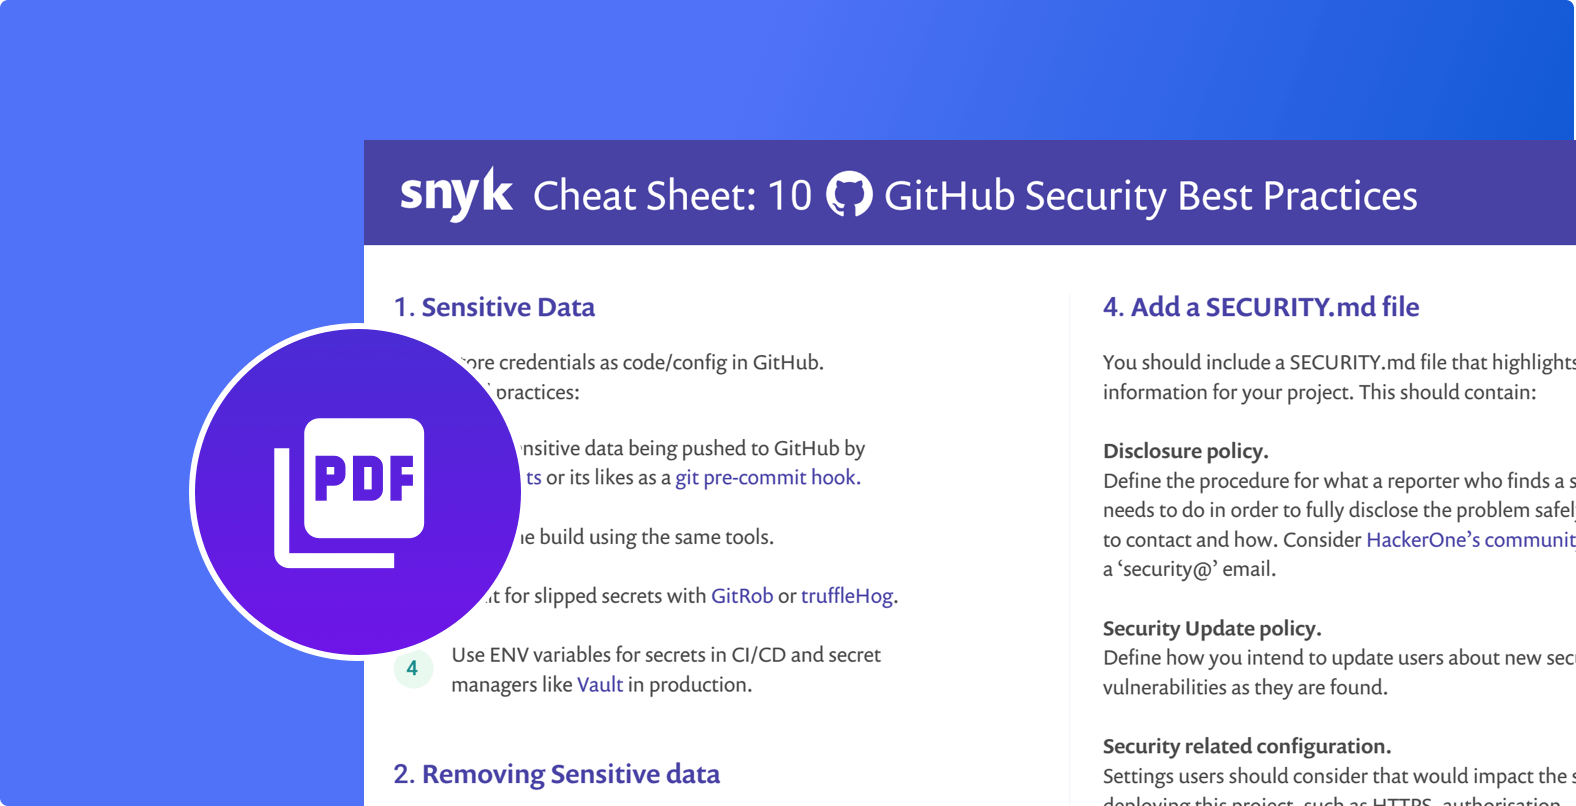 10 GitHub Security Best Practices